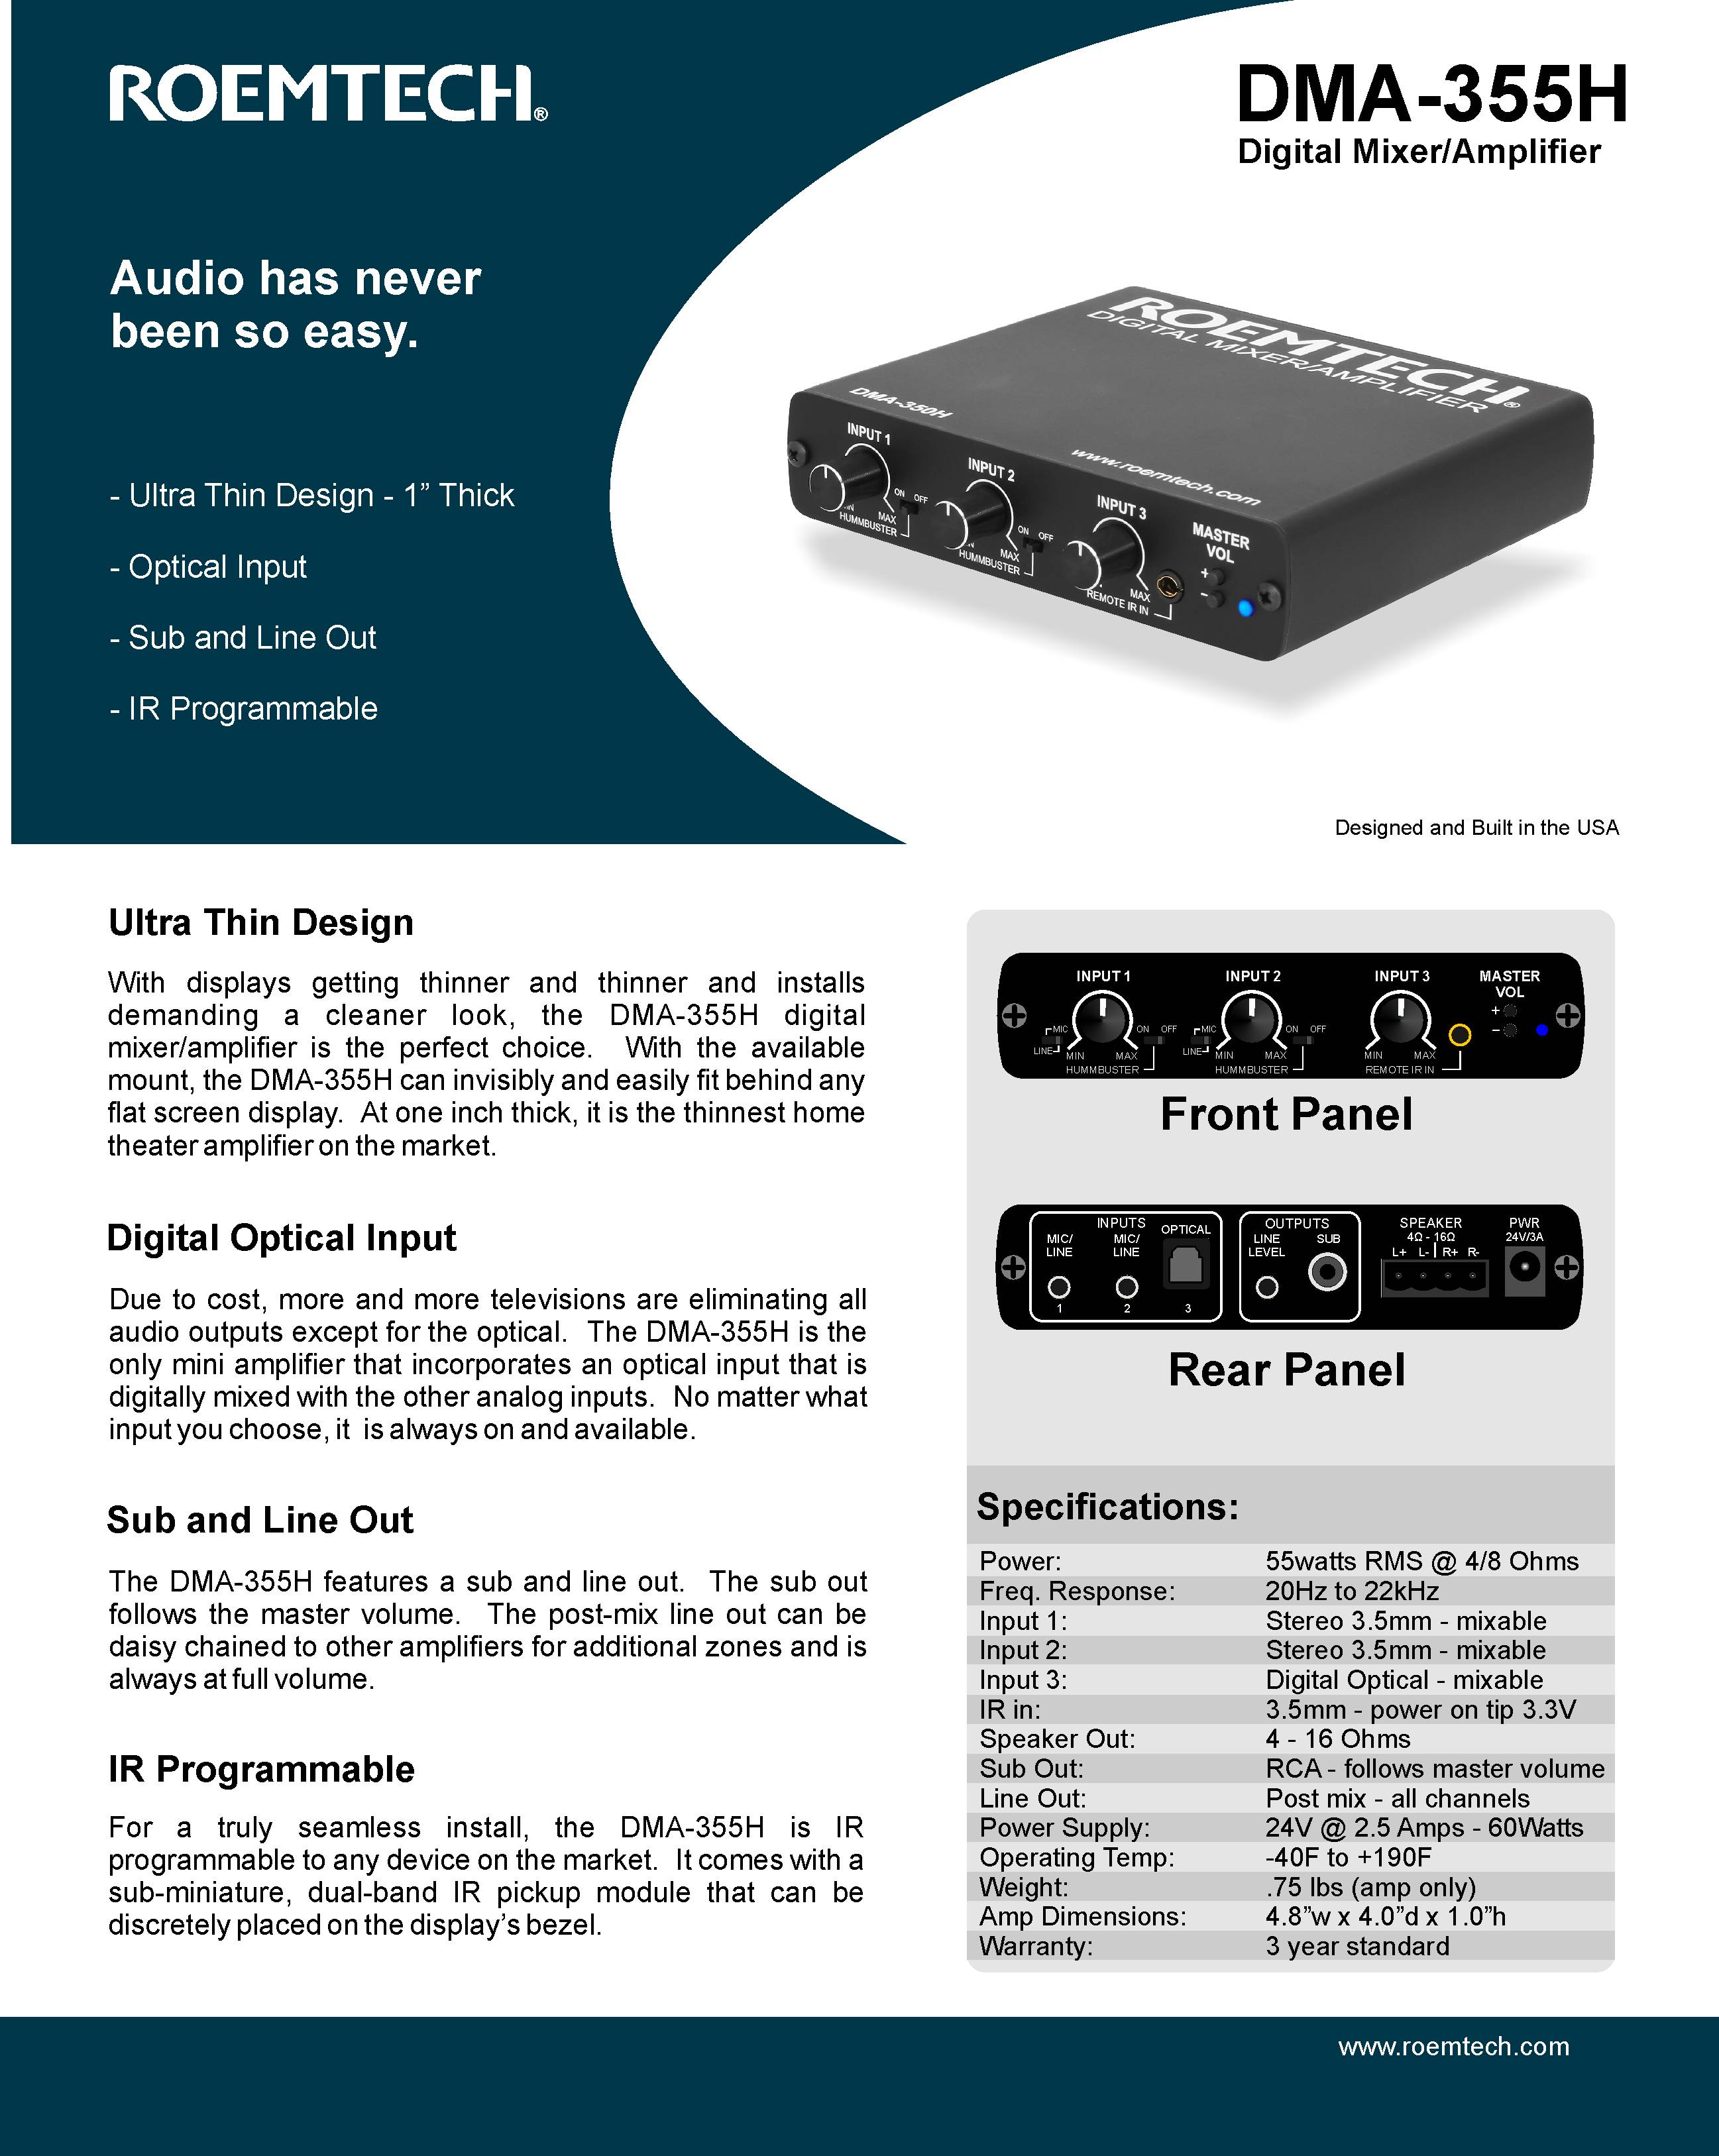 Classroom Audio Systems - PMA-350 Specifications